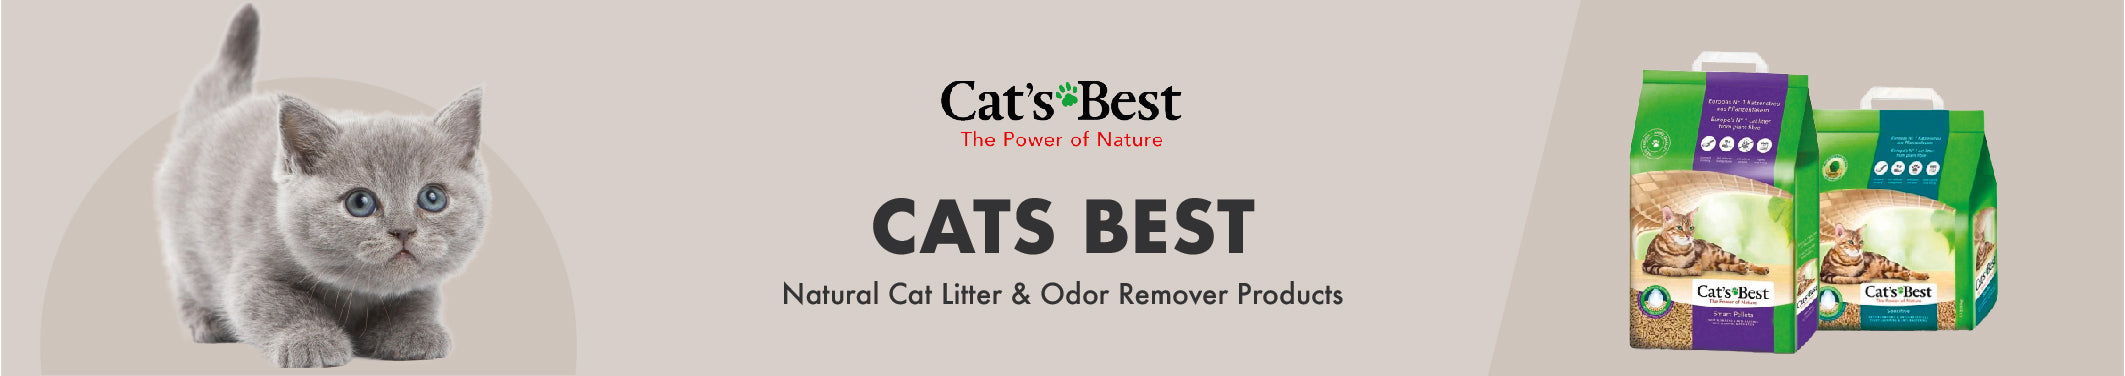 Cats Best Odor Remover Products